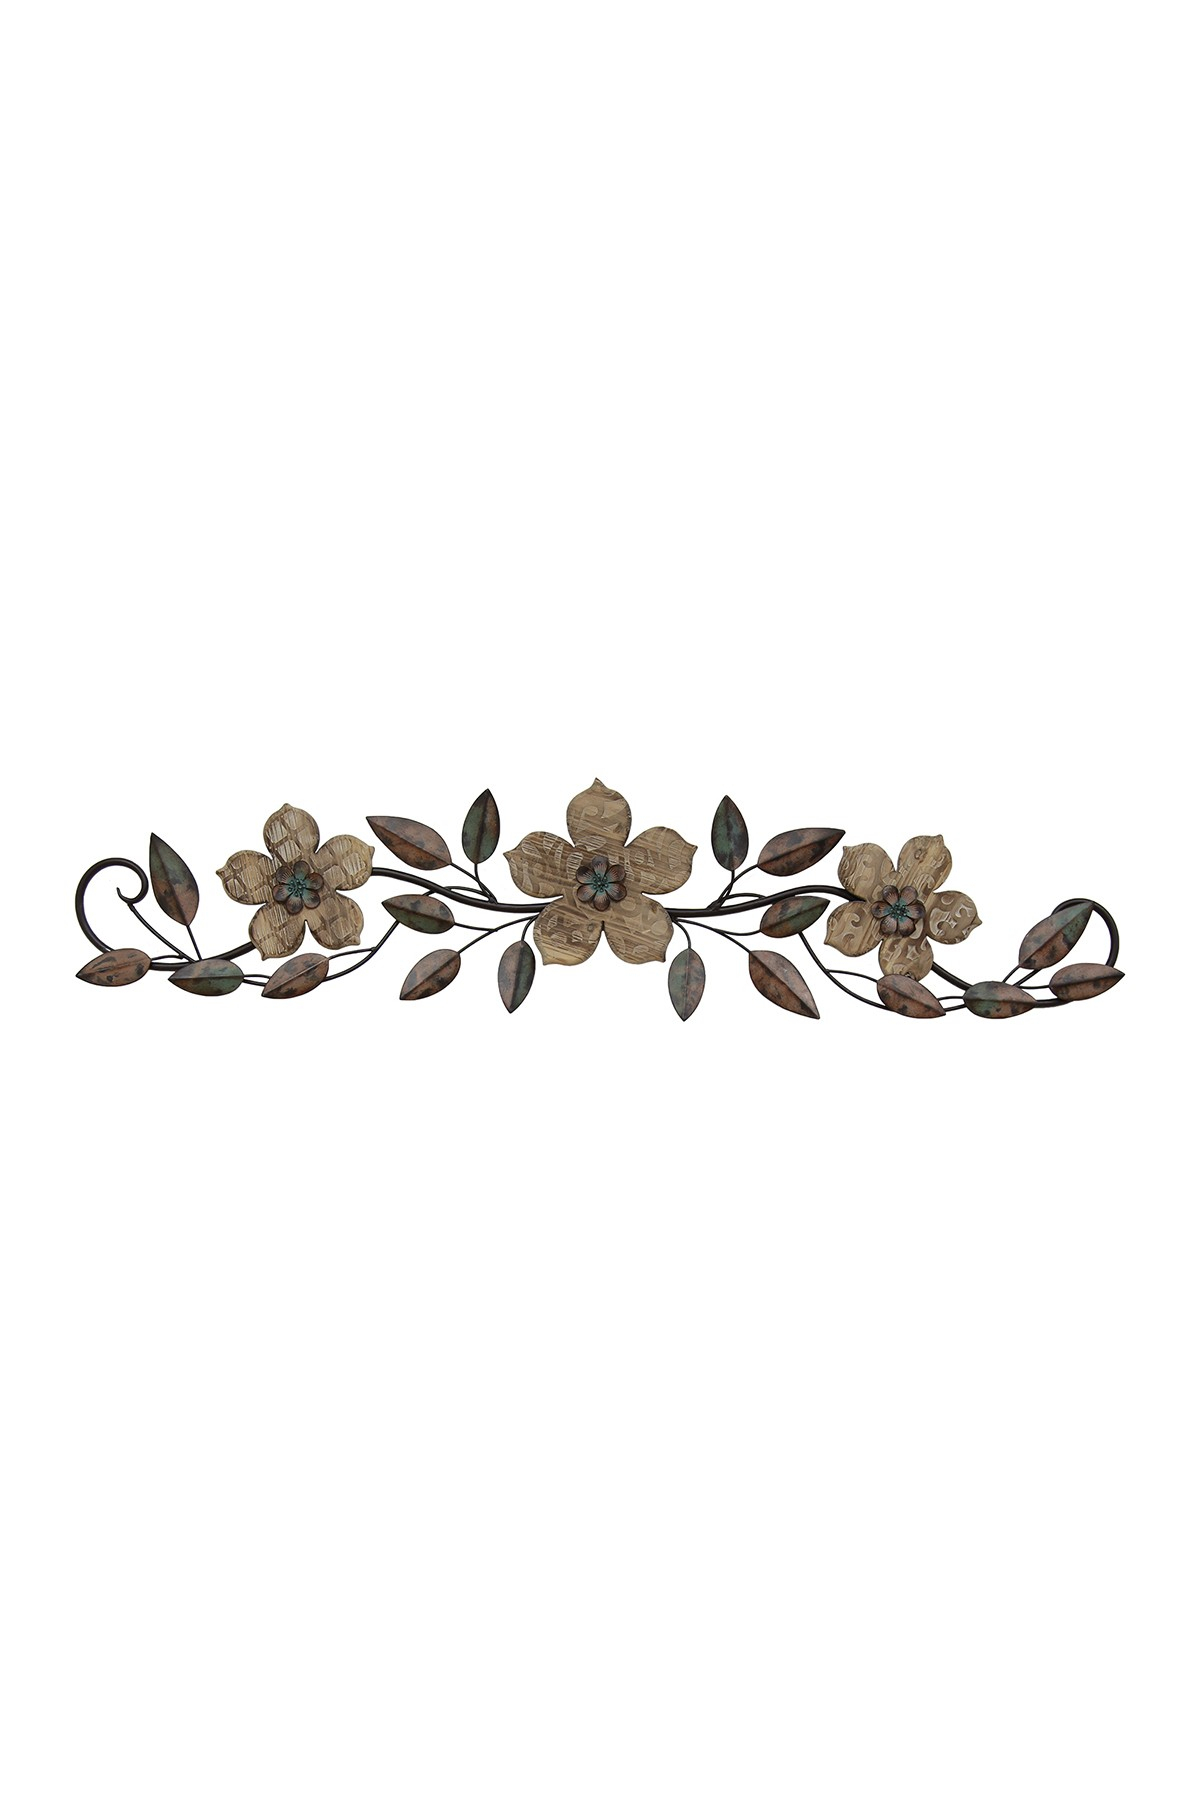 Newest Floral Patterned Over The Door Wall Decor In Floral Patterned Wood Over The Door Multicolor Wall Decor (Gallery 2 of 20)